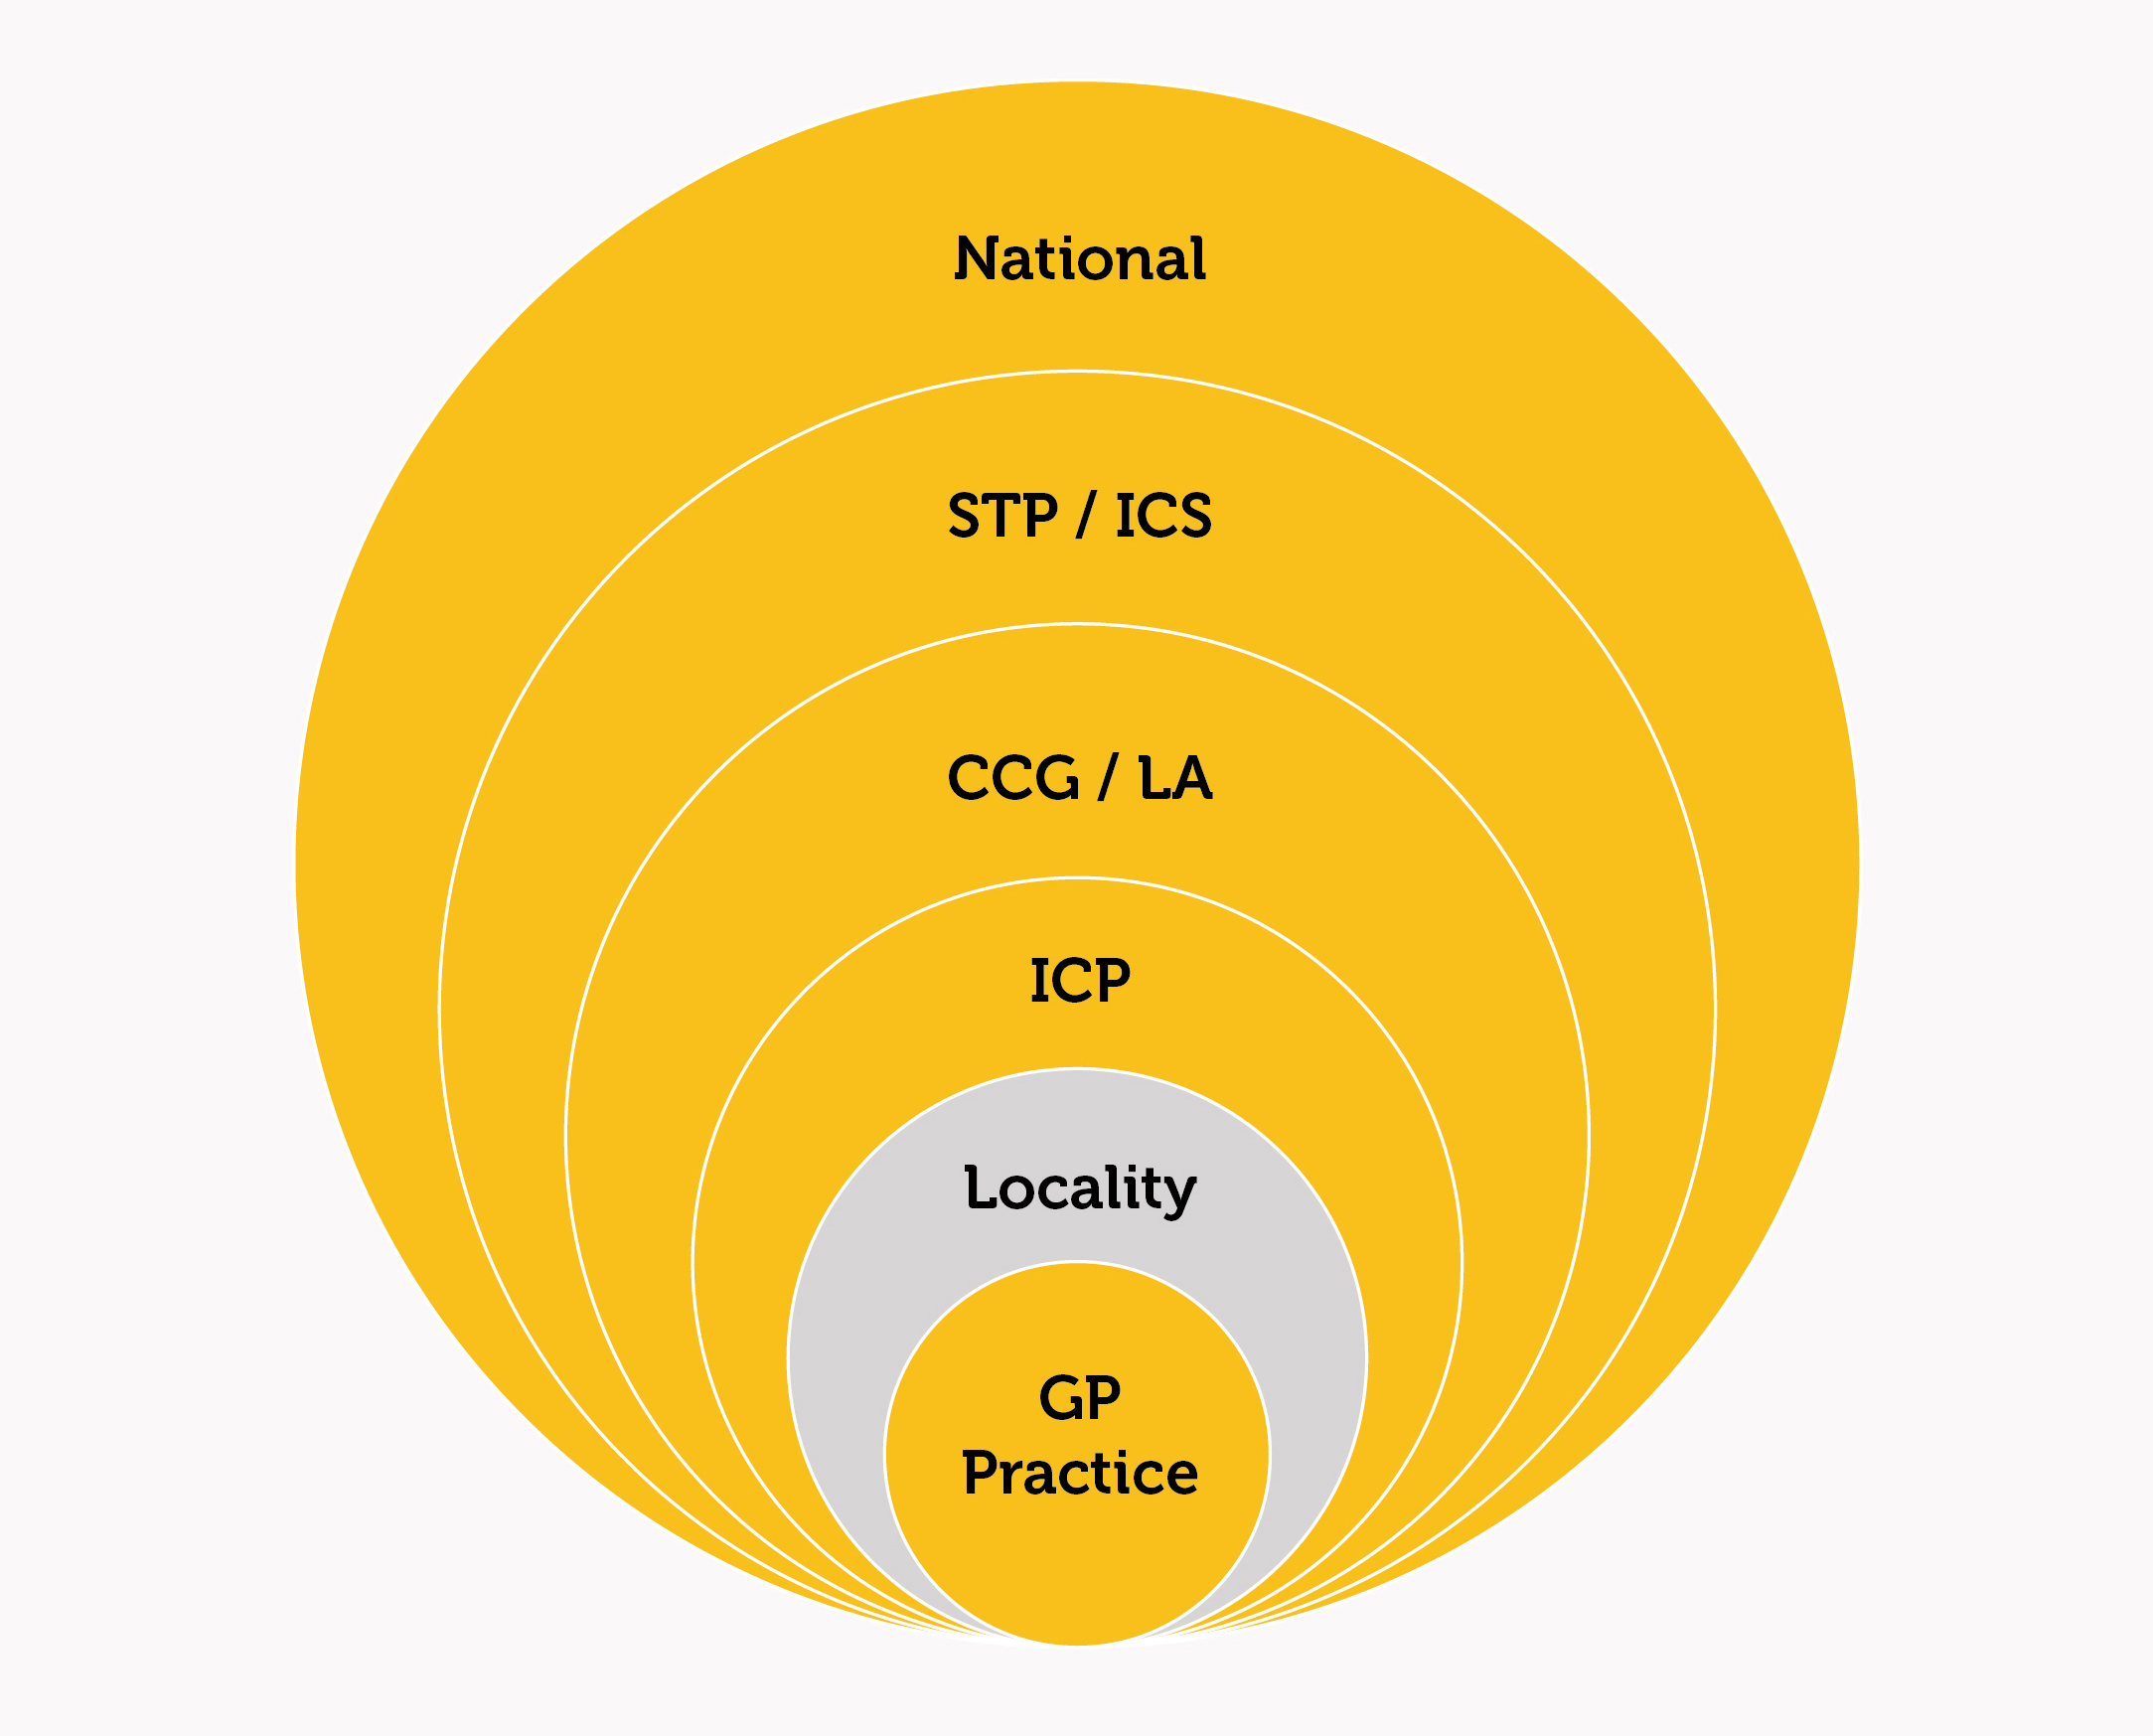 NHS place-based diagram